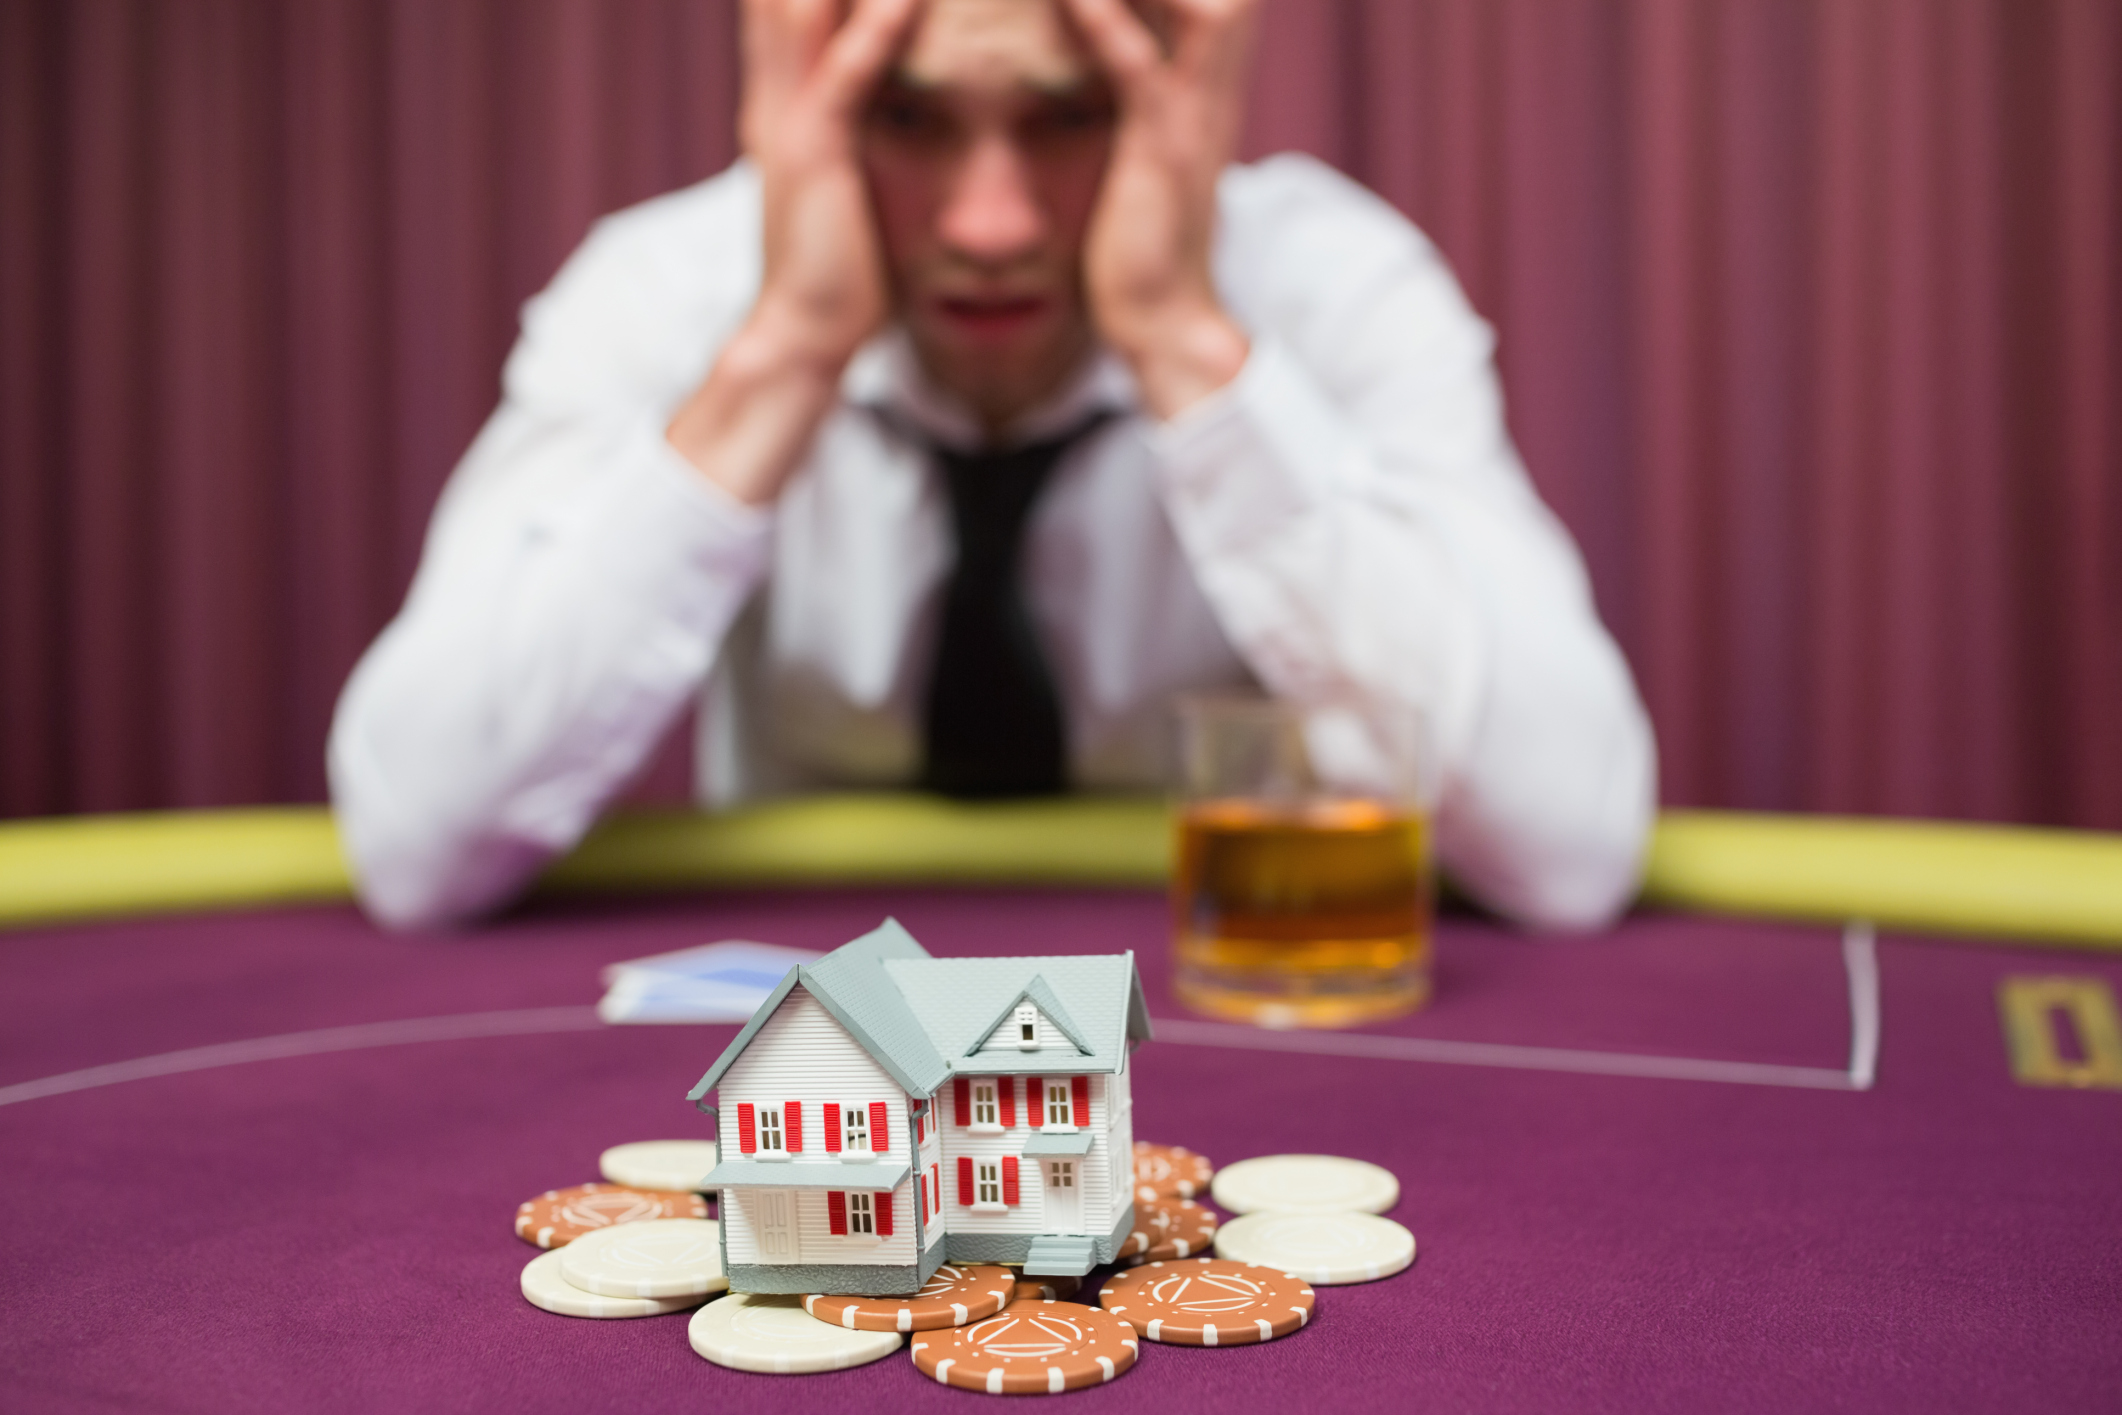 How to Deal with Your Gambling Cravings